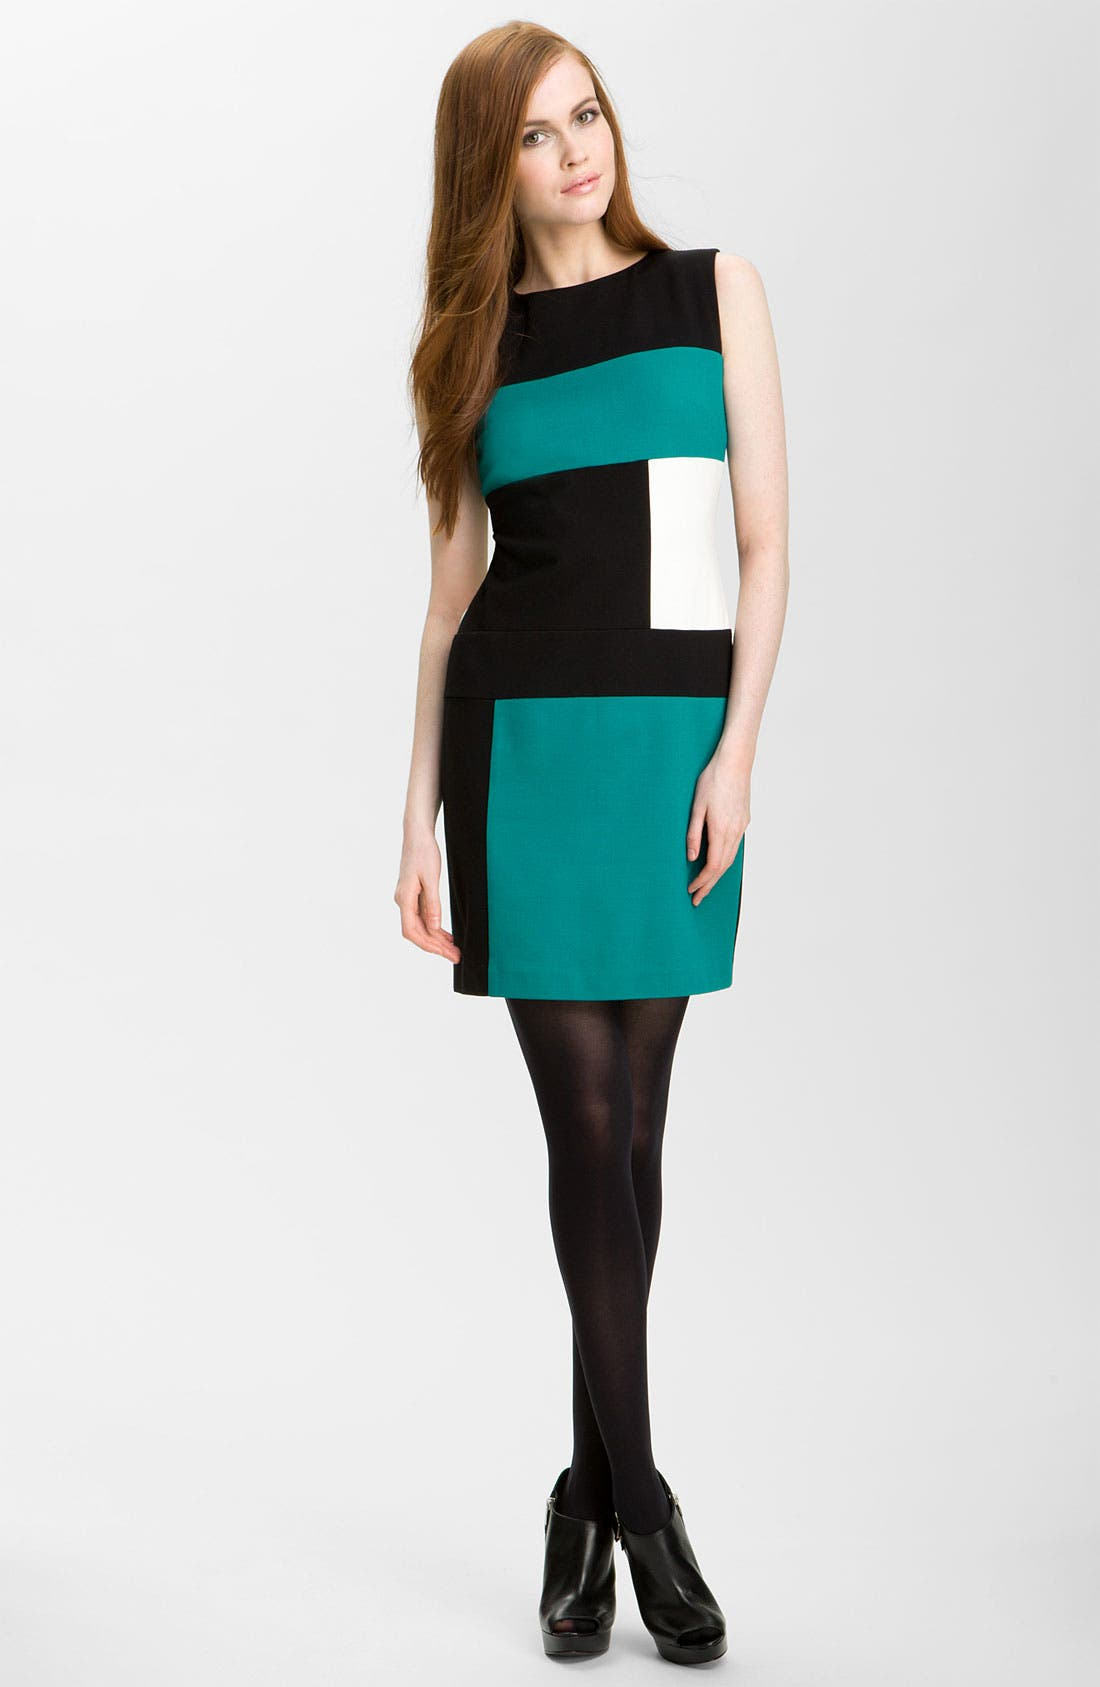 Alternate Image 1 Selected - Vince Camuto Sleeveless Colorblock Dress